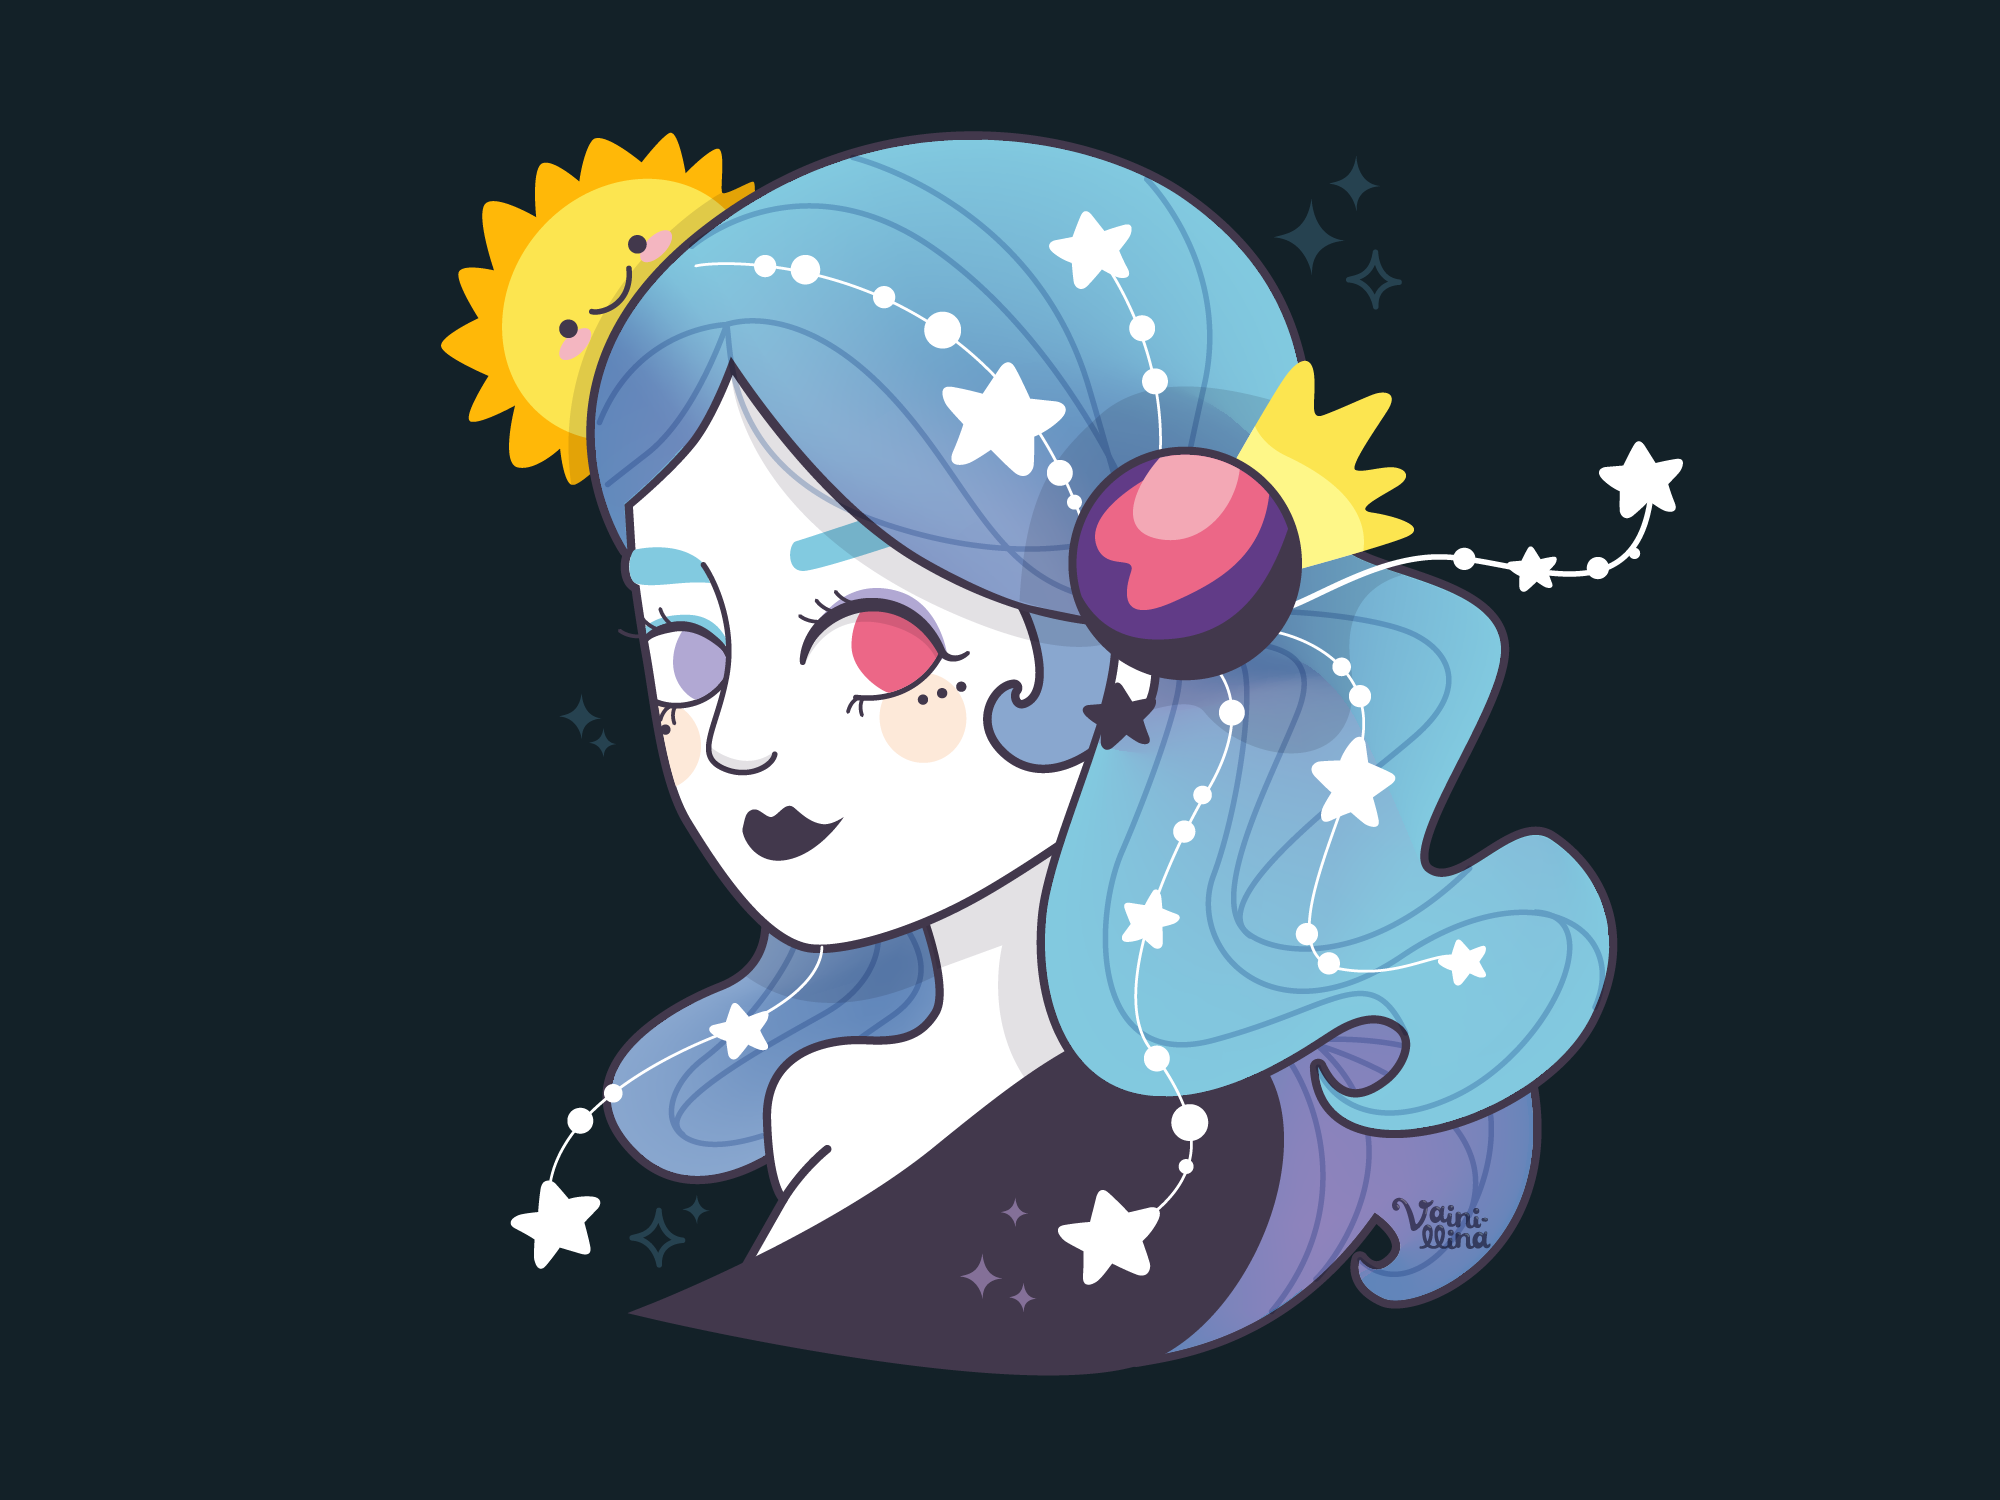 Draw this in your own style challenge by Vainillina on Dribbble